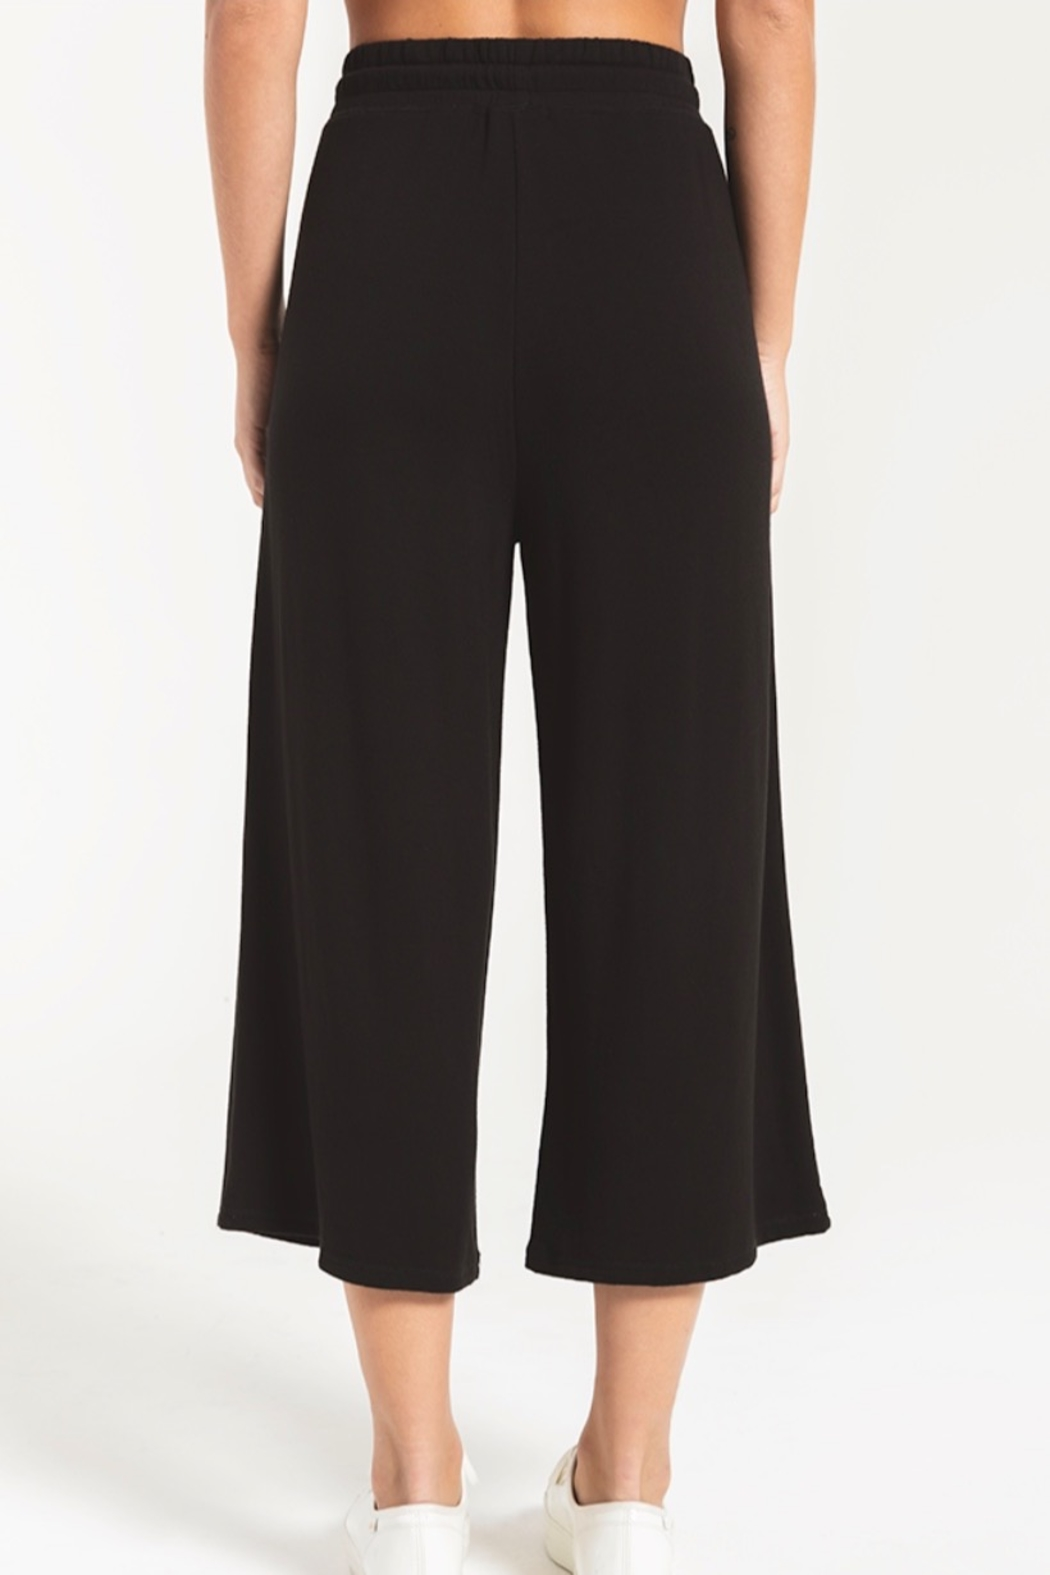 z supply The Premium Fleece Crop Pant - Side Cropped Image